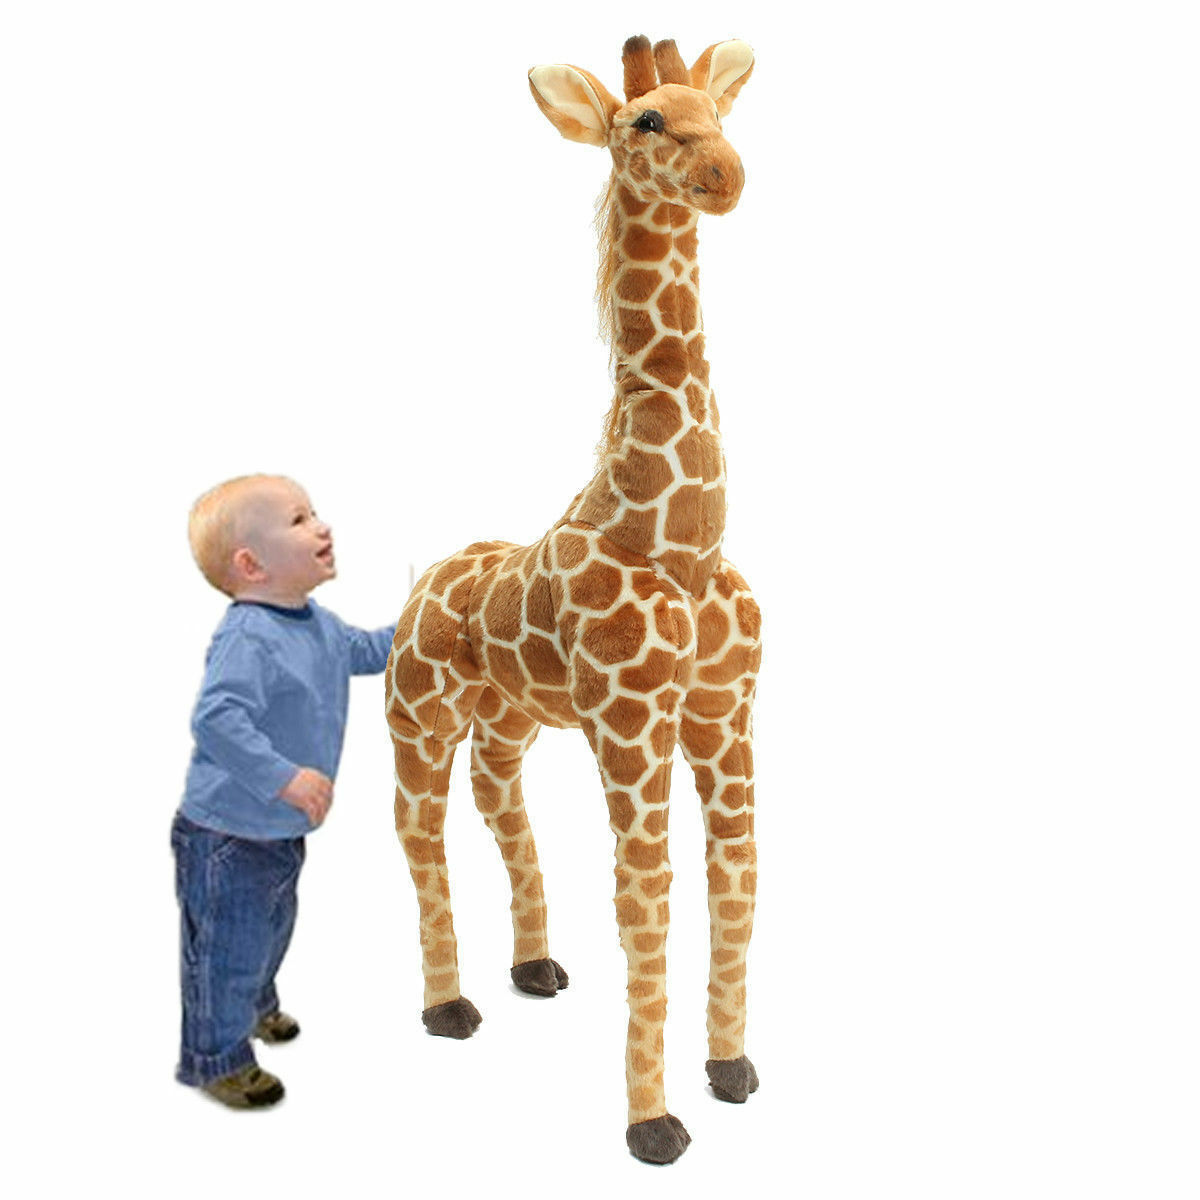 Plush Giraffe Toy Doll Giant Large Stuffed Animals Soft Doll kids Gift